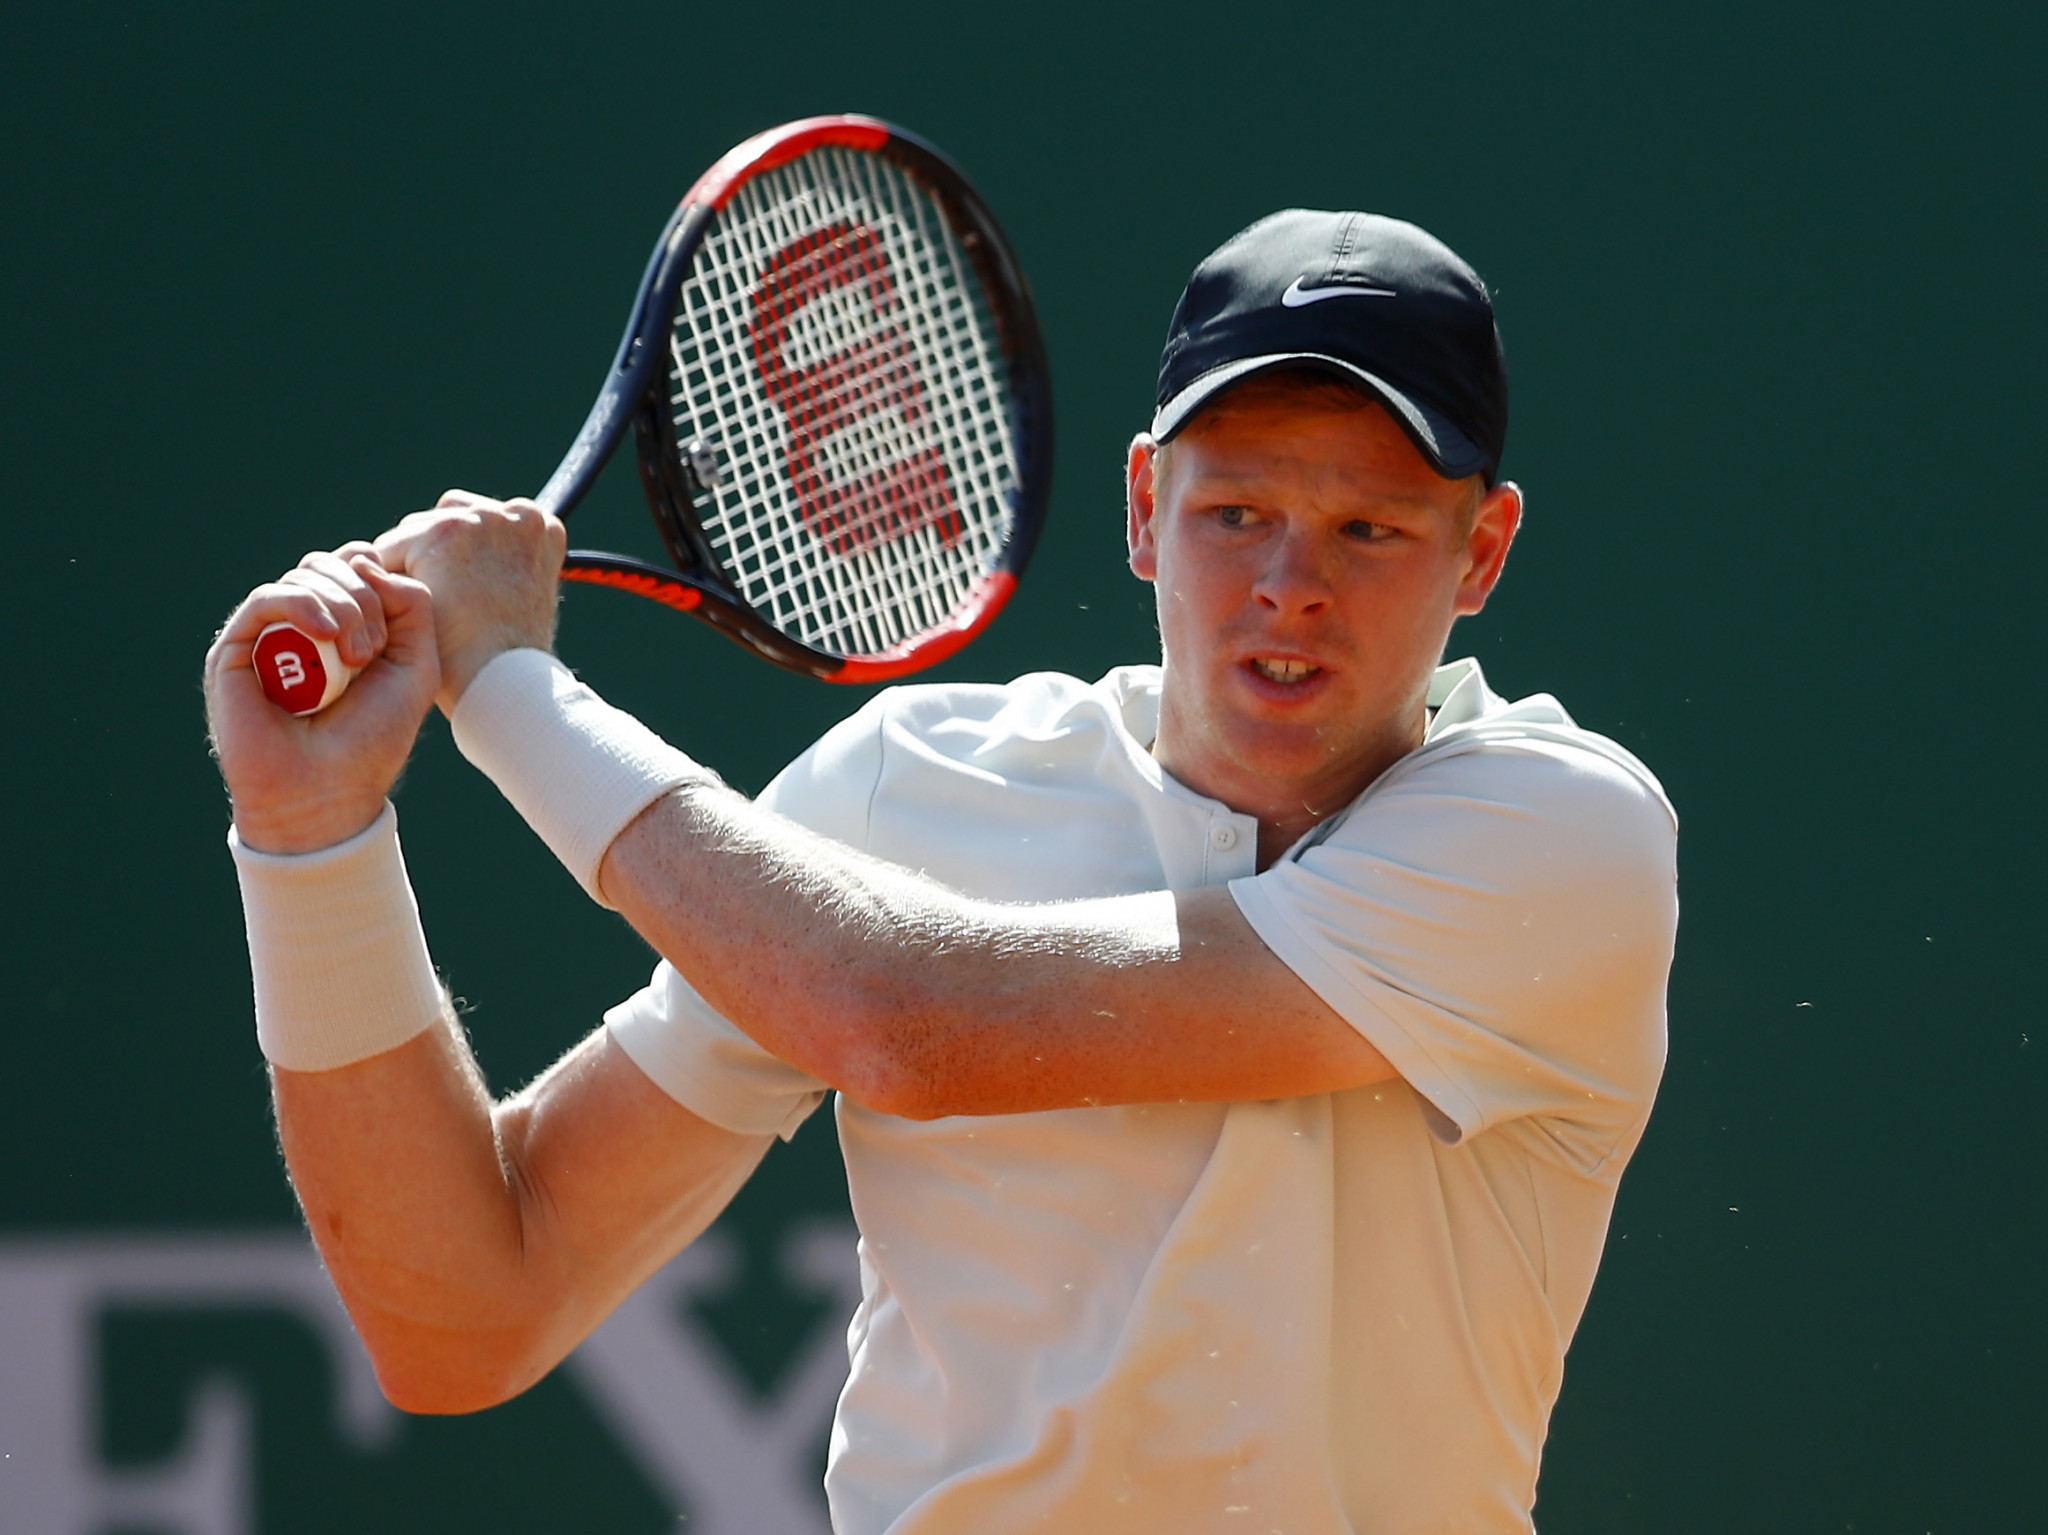 Edmund, fresh from first ATP final, beaten by Italian qualifier at Monte Carlo Masters